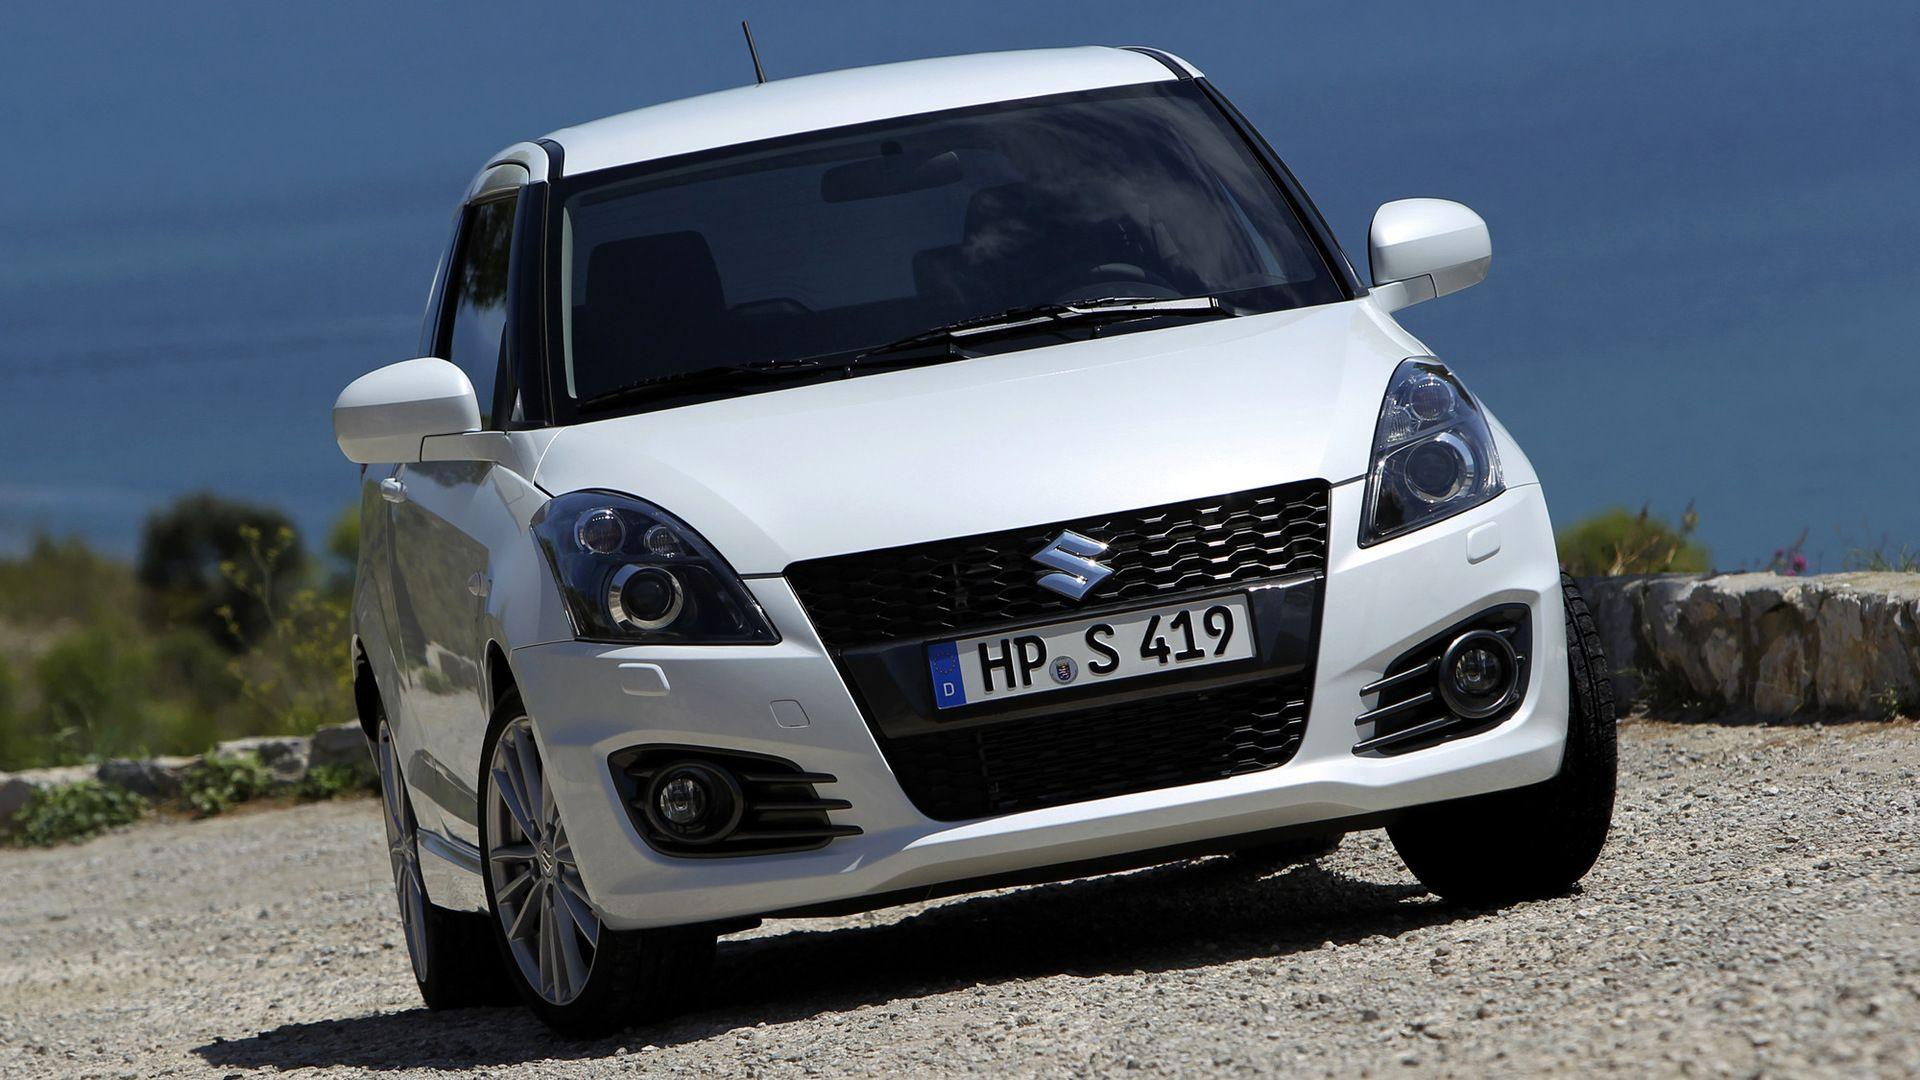 Suzuki Swift Sport (2011) Wallpapers and HD Images - Car Pixel